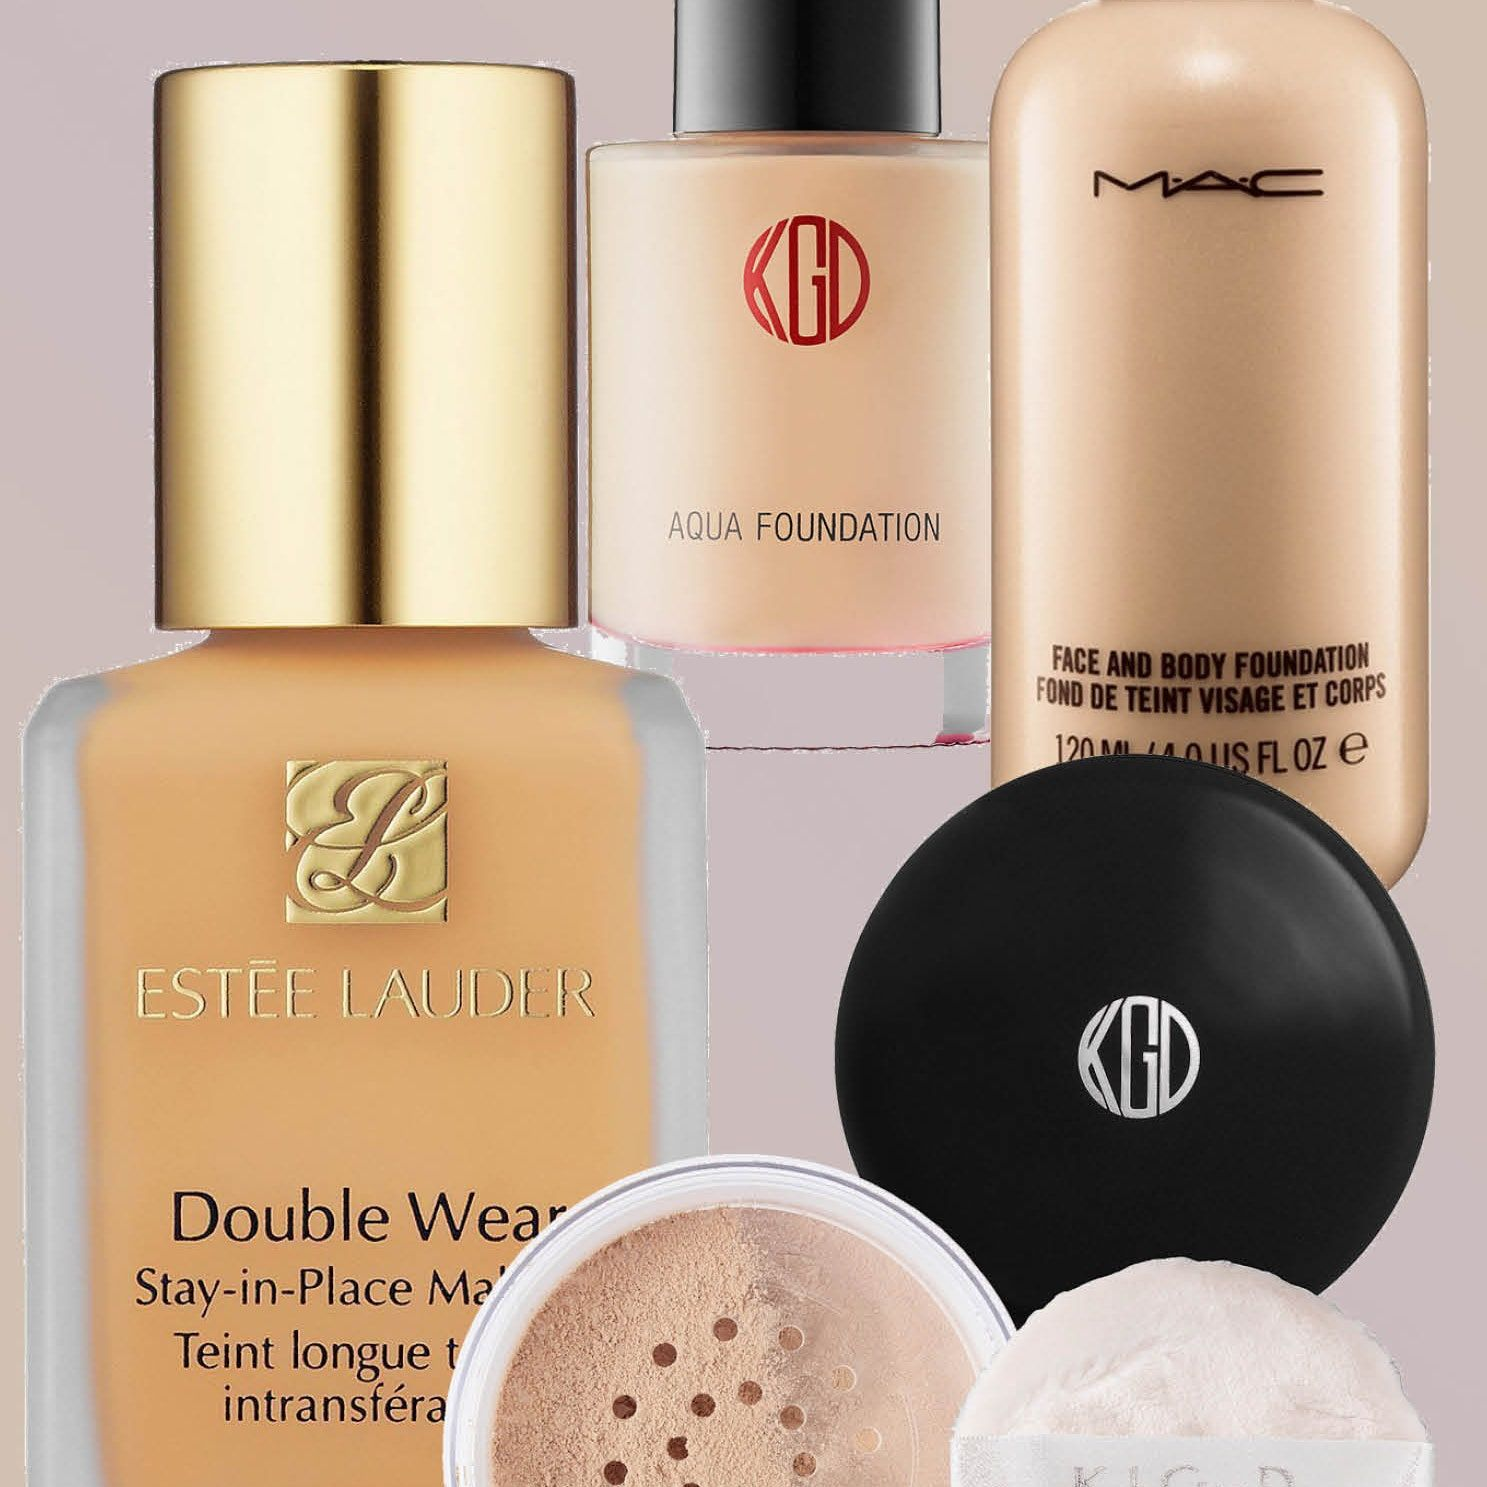 Minimize Large Pores With Foundation According To Makeup